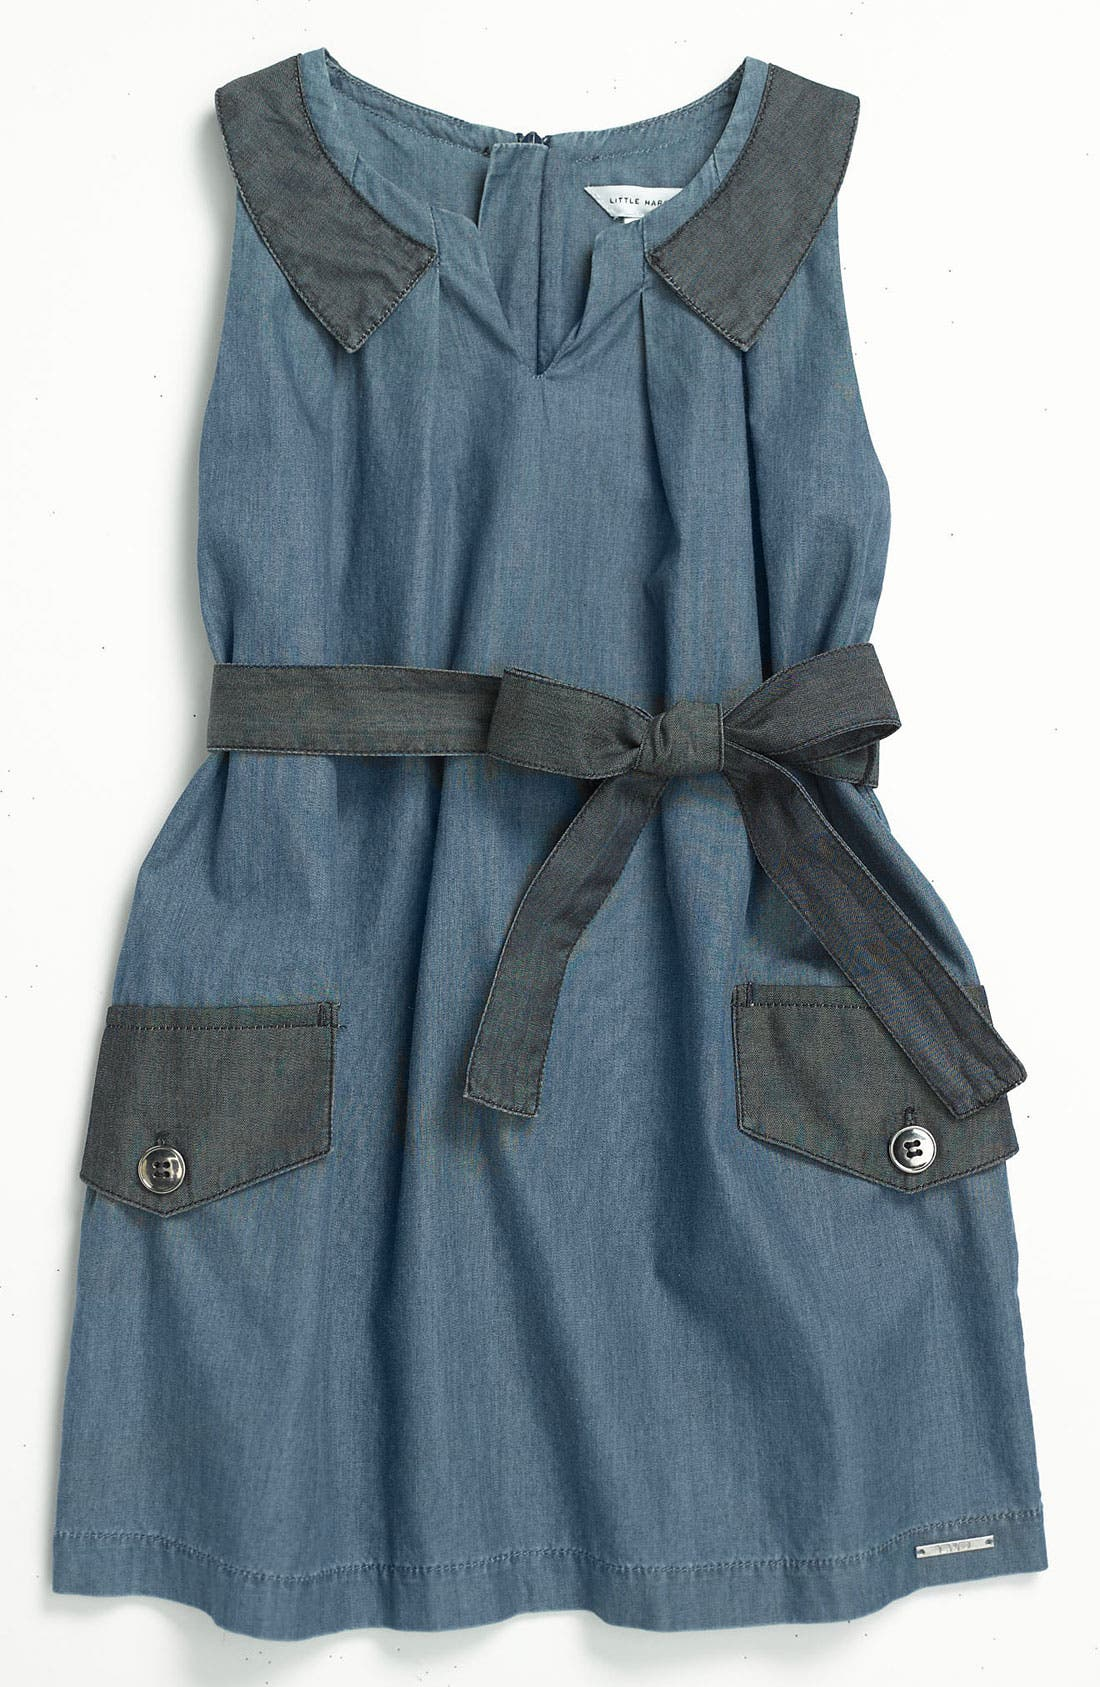 Alternate Image 1 Selected - LITTLE MARC JACOBS Sleeveless Chambray Dress (Little Girls & Big Girls)